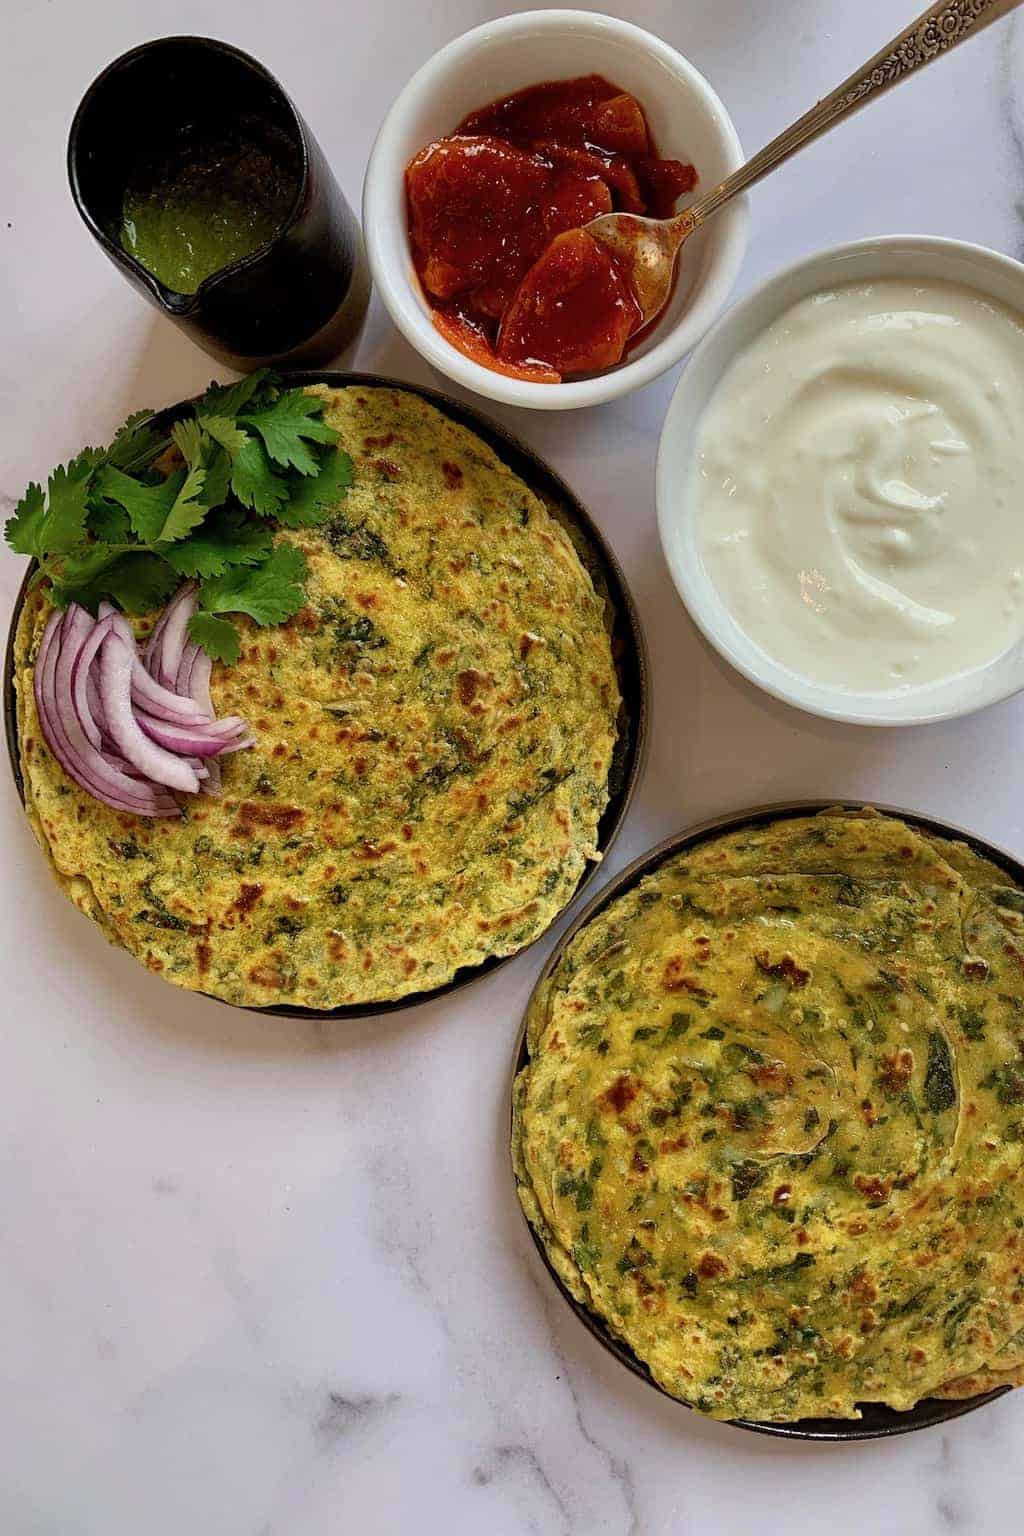 Kale Potato Paratha with yogurt and pickle on the side